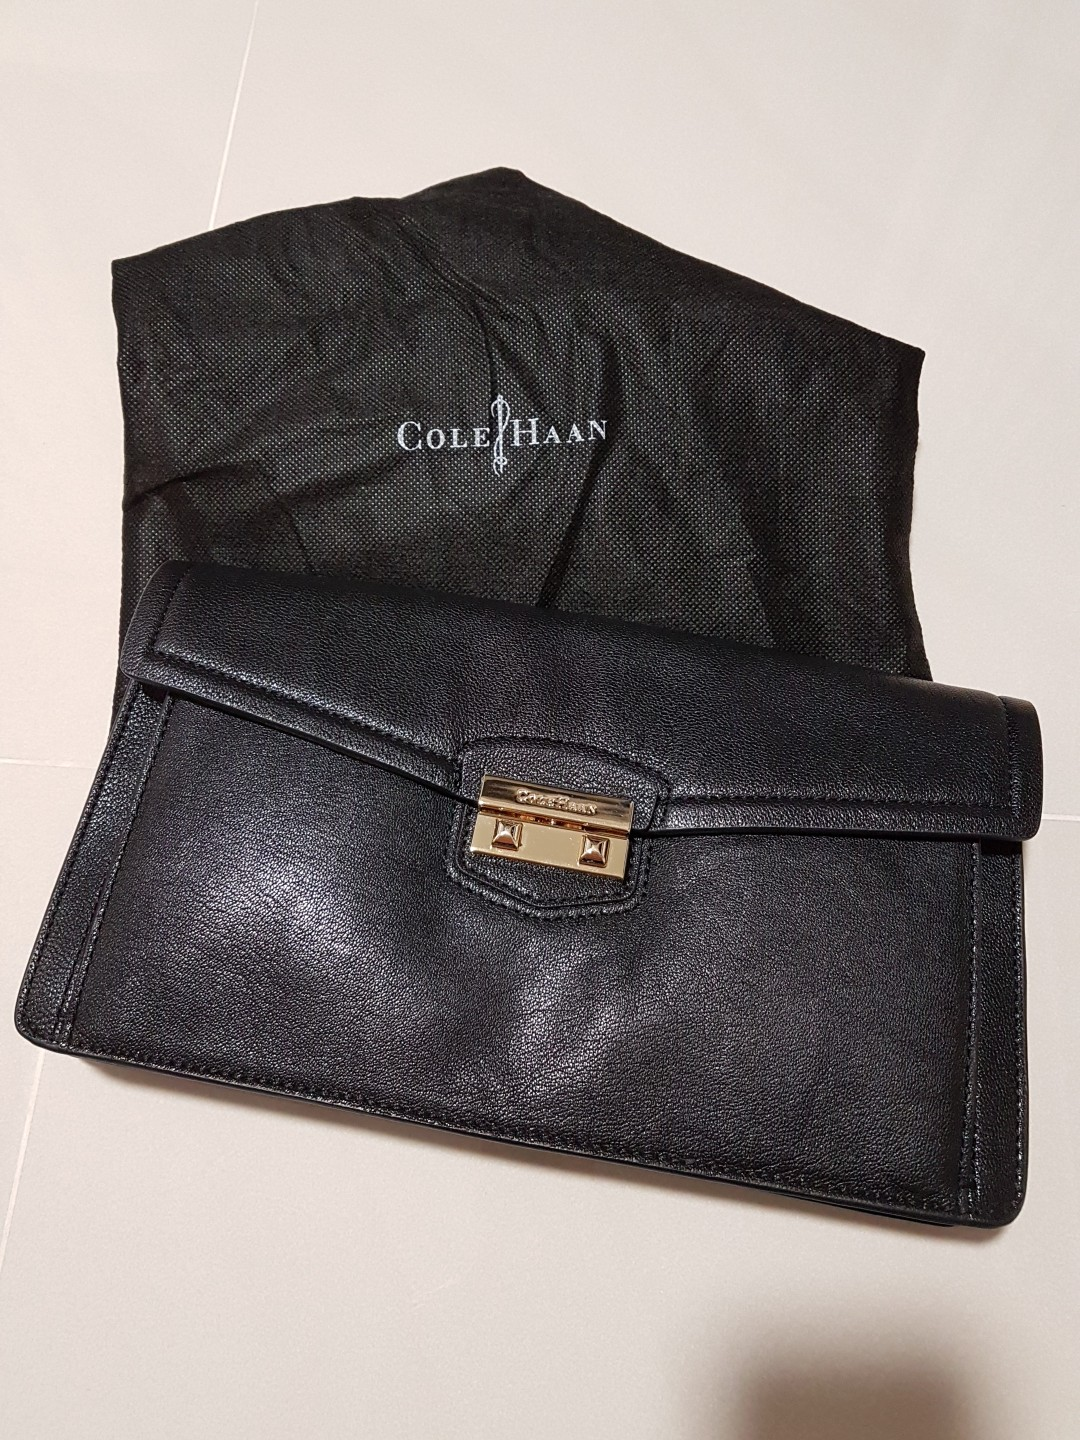 fb8097b908 Cole Haan leather clutch, Luxury, Bags & Wallets, Clutches on Carousell